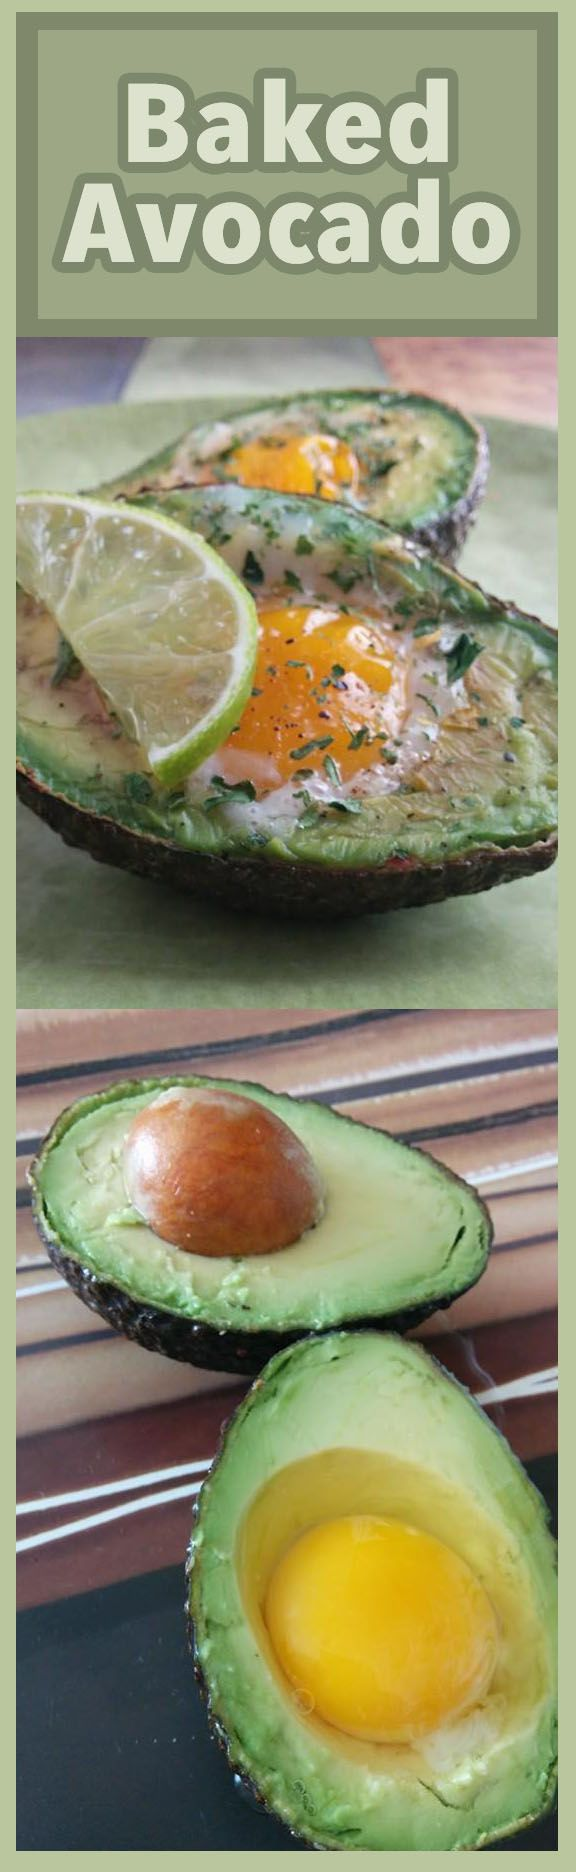 63 best brain food images on pinterest brain food healthy eating a healthy breakfast with protein fiber calcium omega oils and brain food forumfinder Image collections